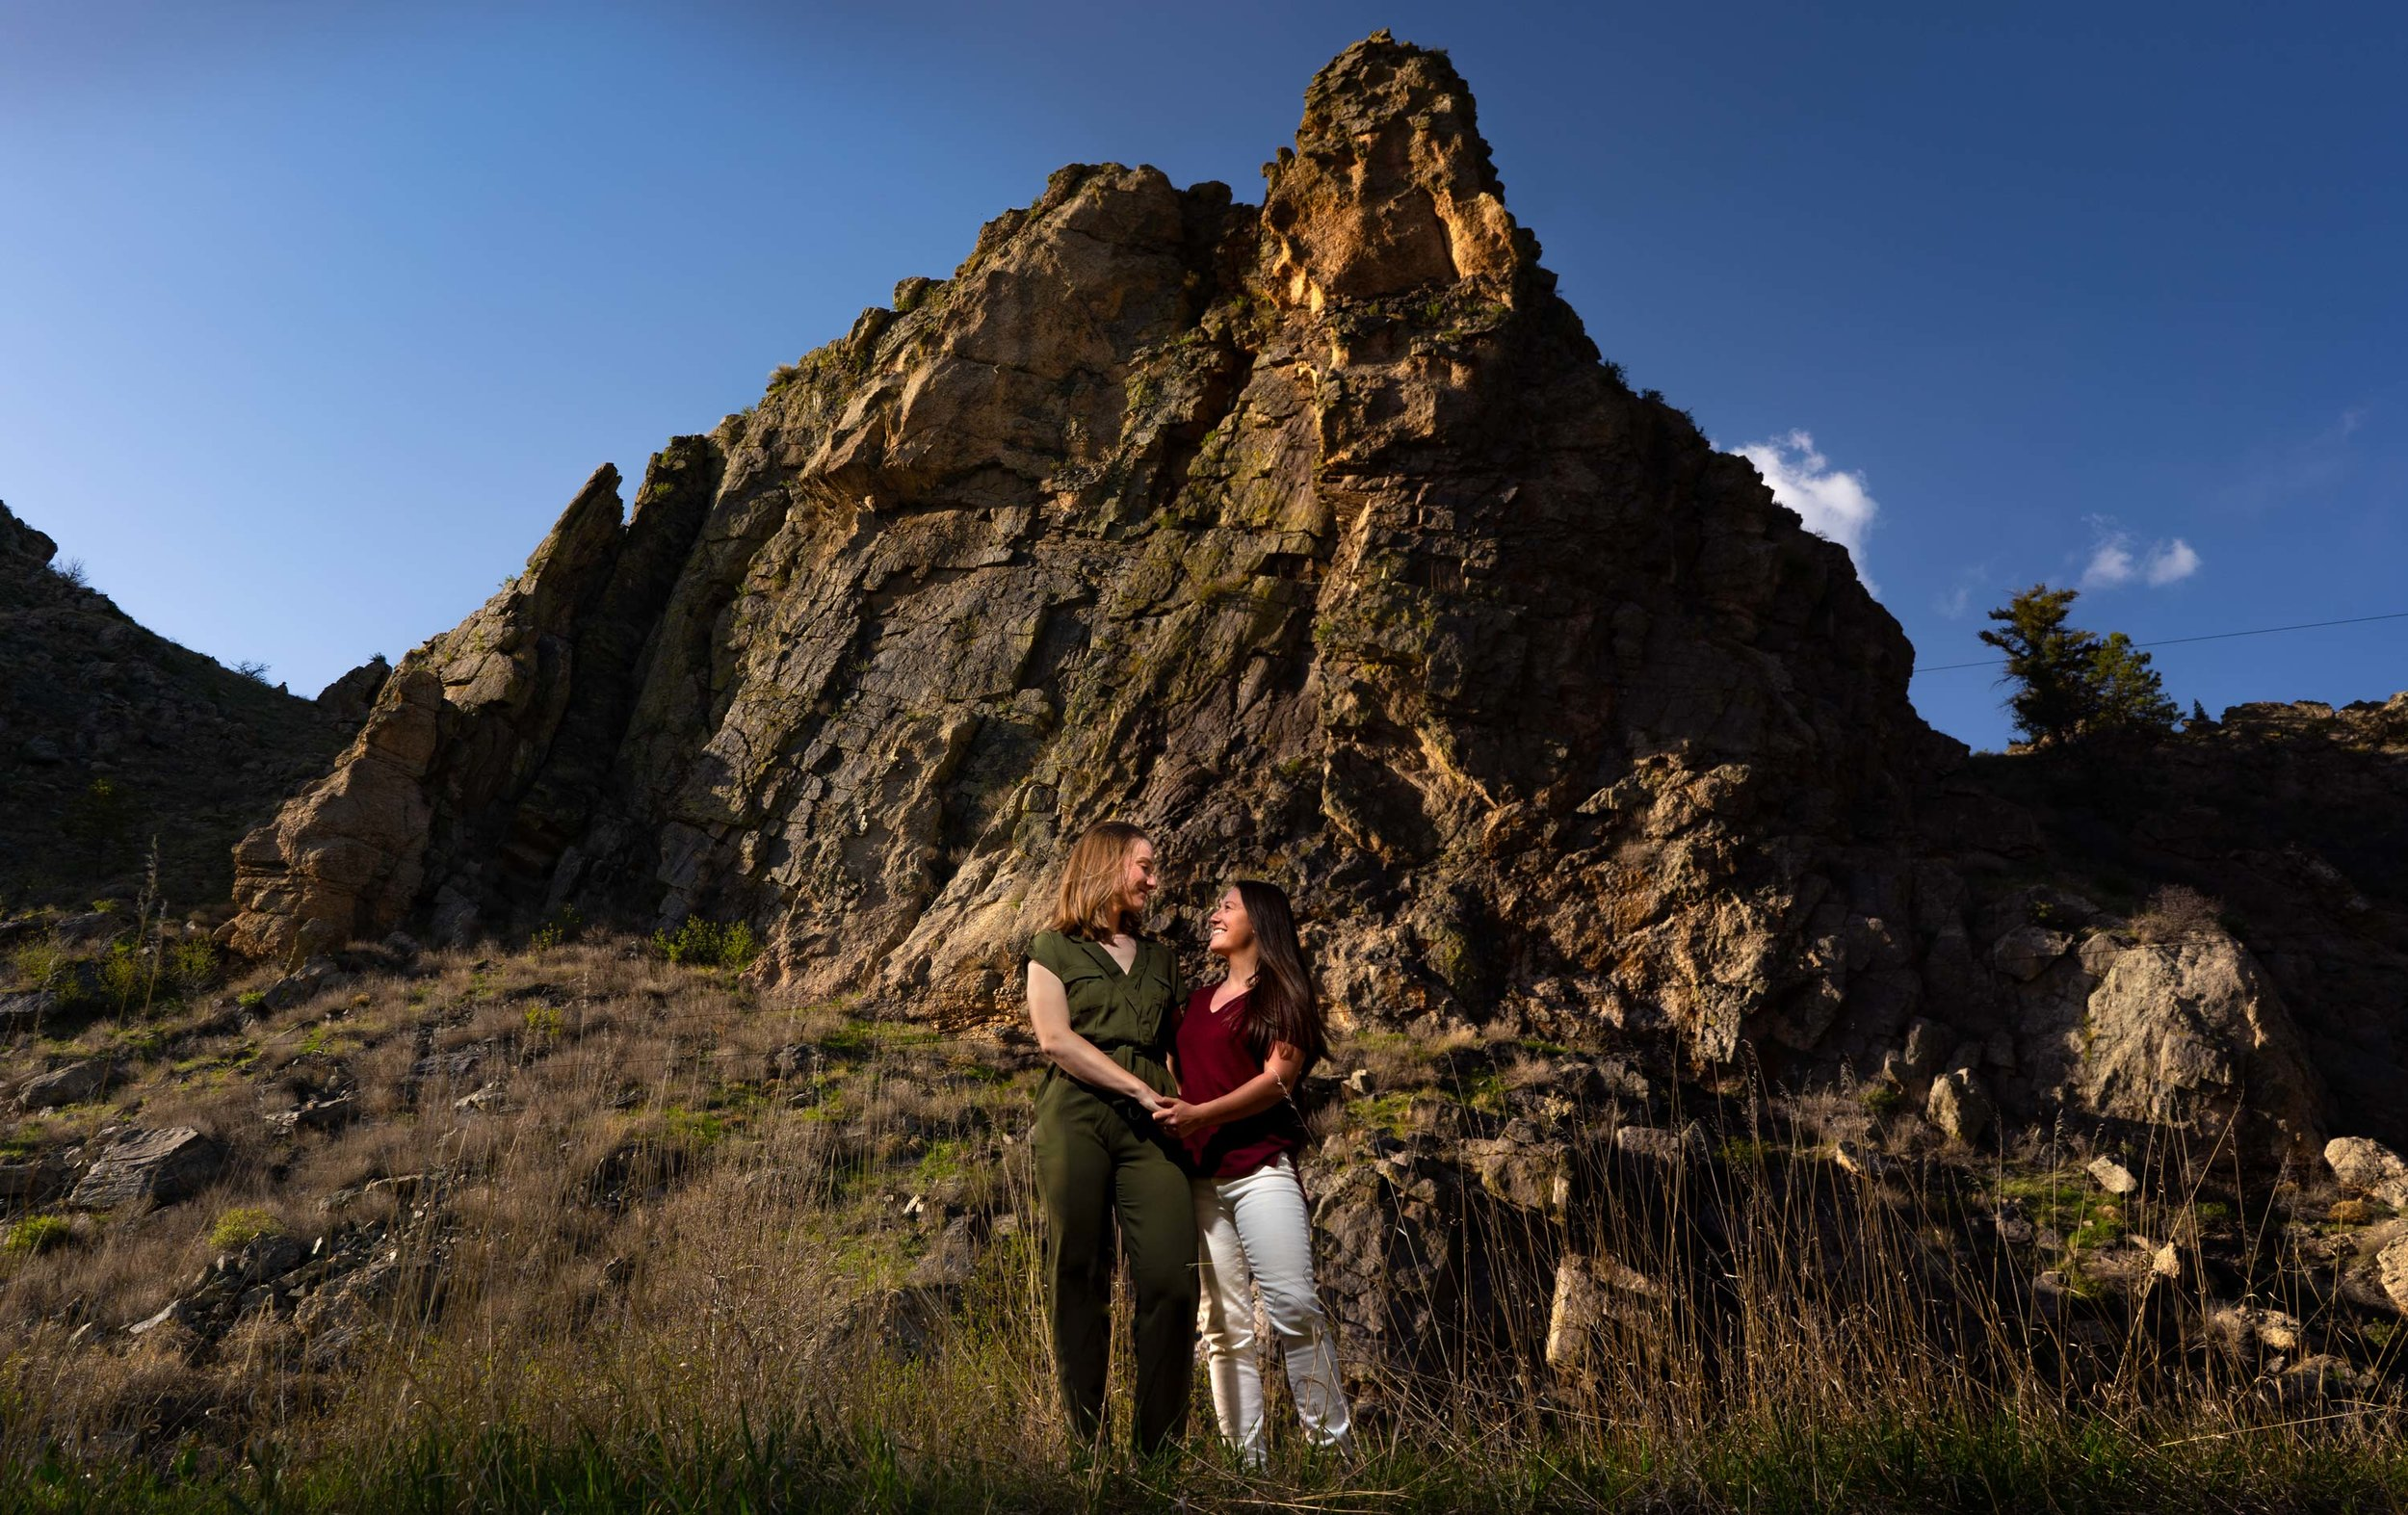 Poudre_Canyon_Engagement_Session-62.jpg